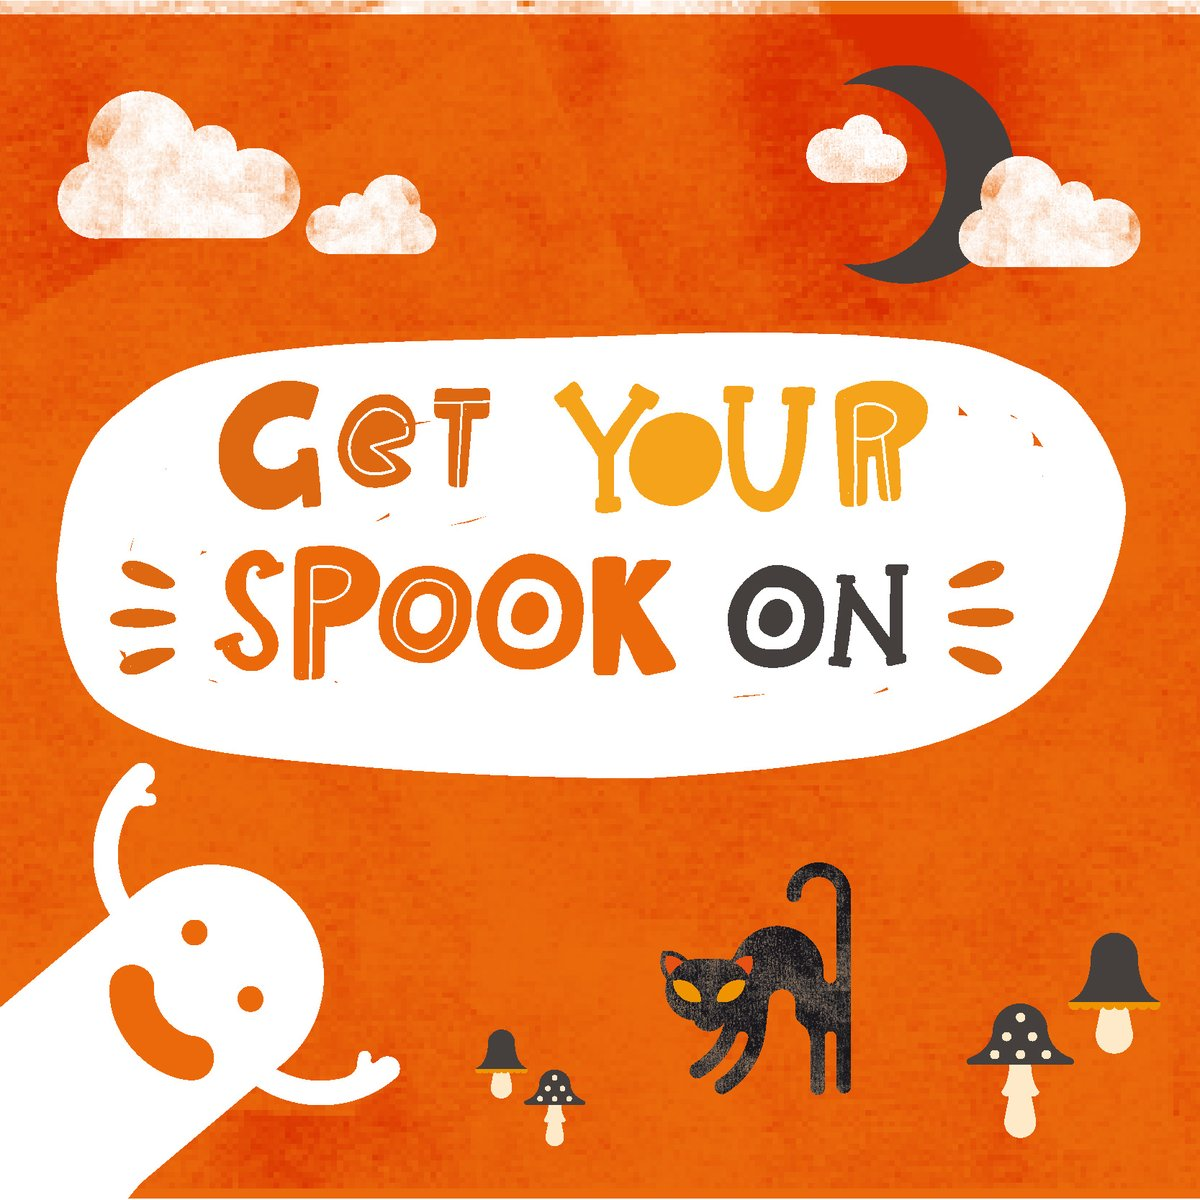 Theres so much happening in Yorkshire this half term. From skeleton hunts to stargazing, science experiments to zip wires. Check out our website for all the latest spooky activities to keep you busy over half term. yorkshire.com/inspiration/sp… #HalloweenInYorkshire #HalfTerm